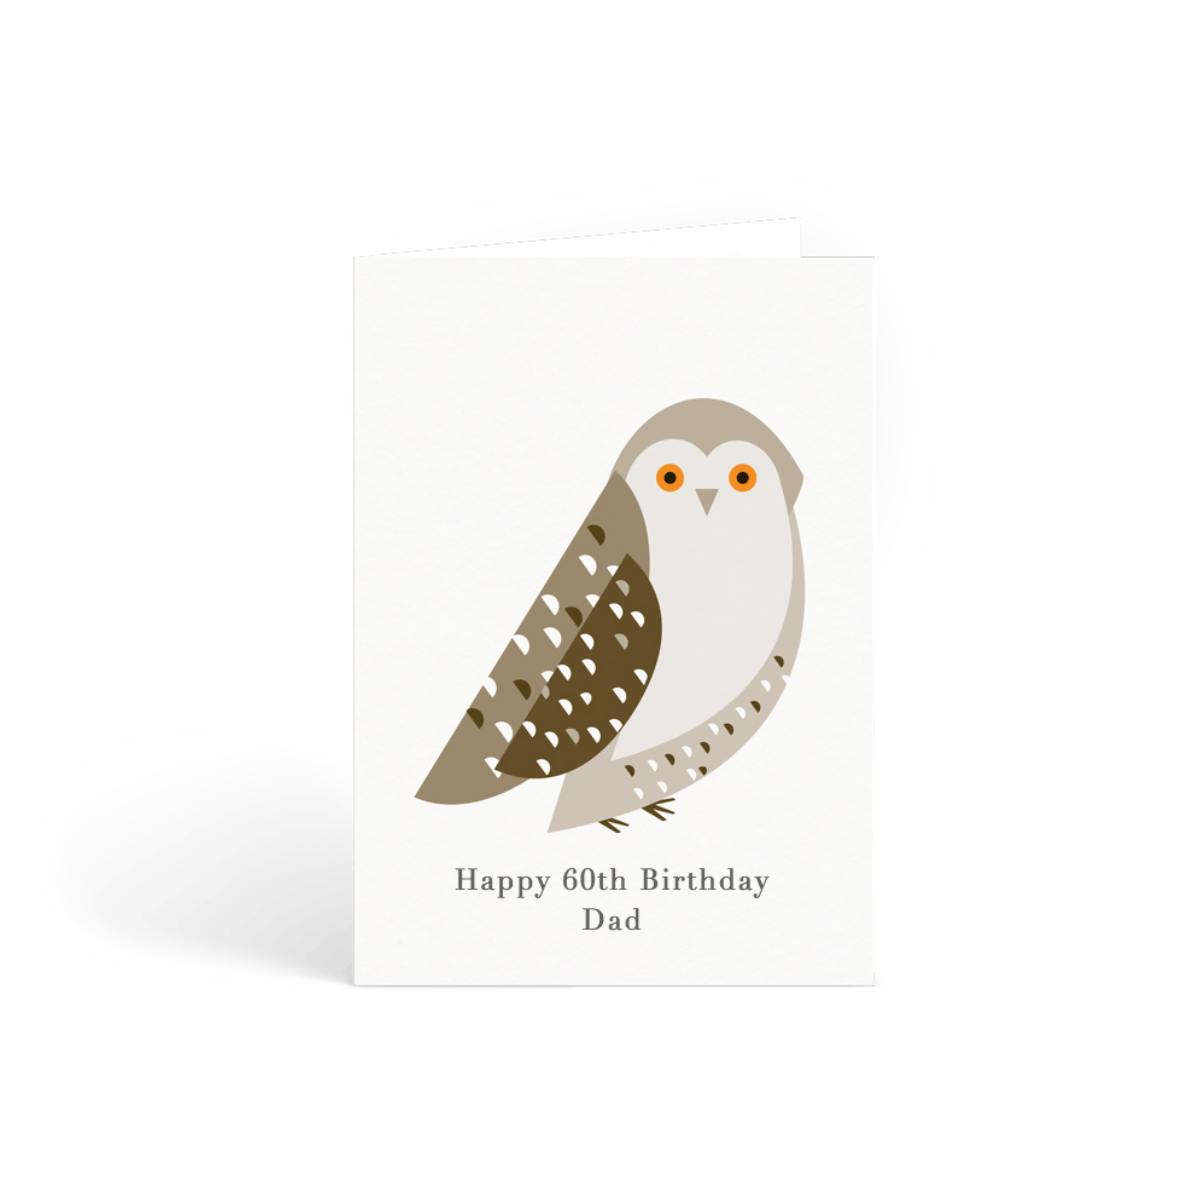 Https%3a%2f%2fwww.papier.com%2fproduct image%2f2891%2f2%2fsnowy owl 794 front 1542385780.png?ixlib=rb 1.1